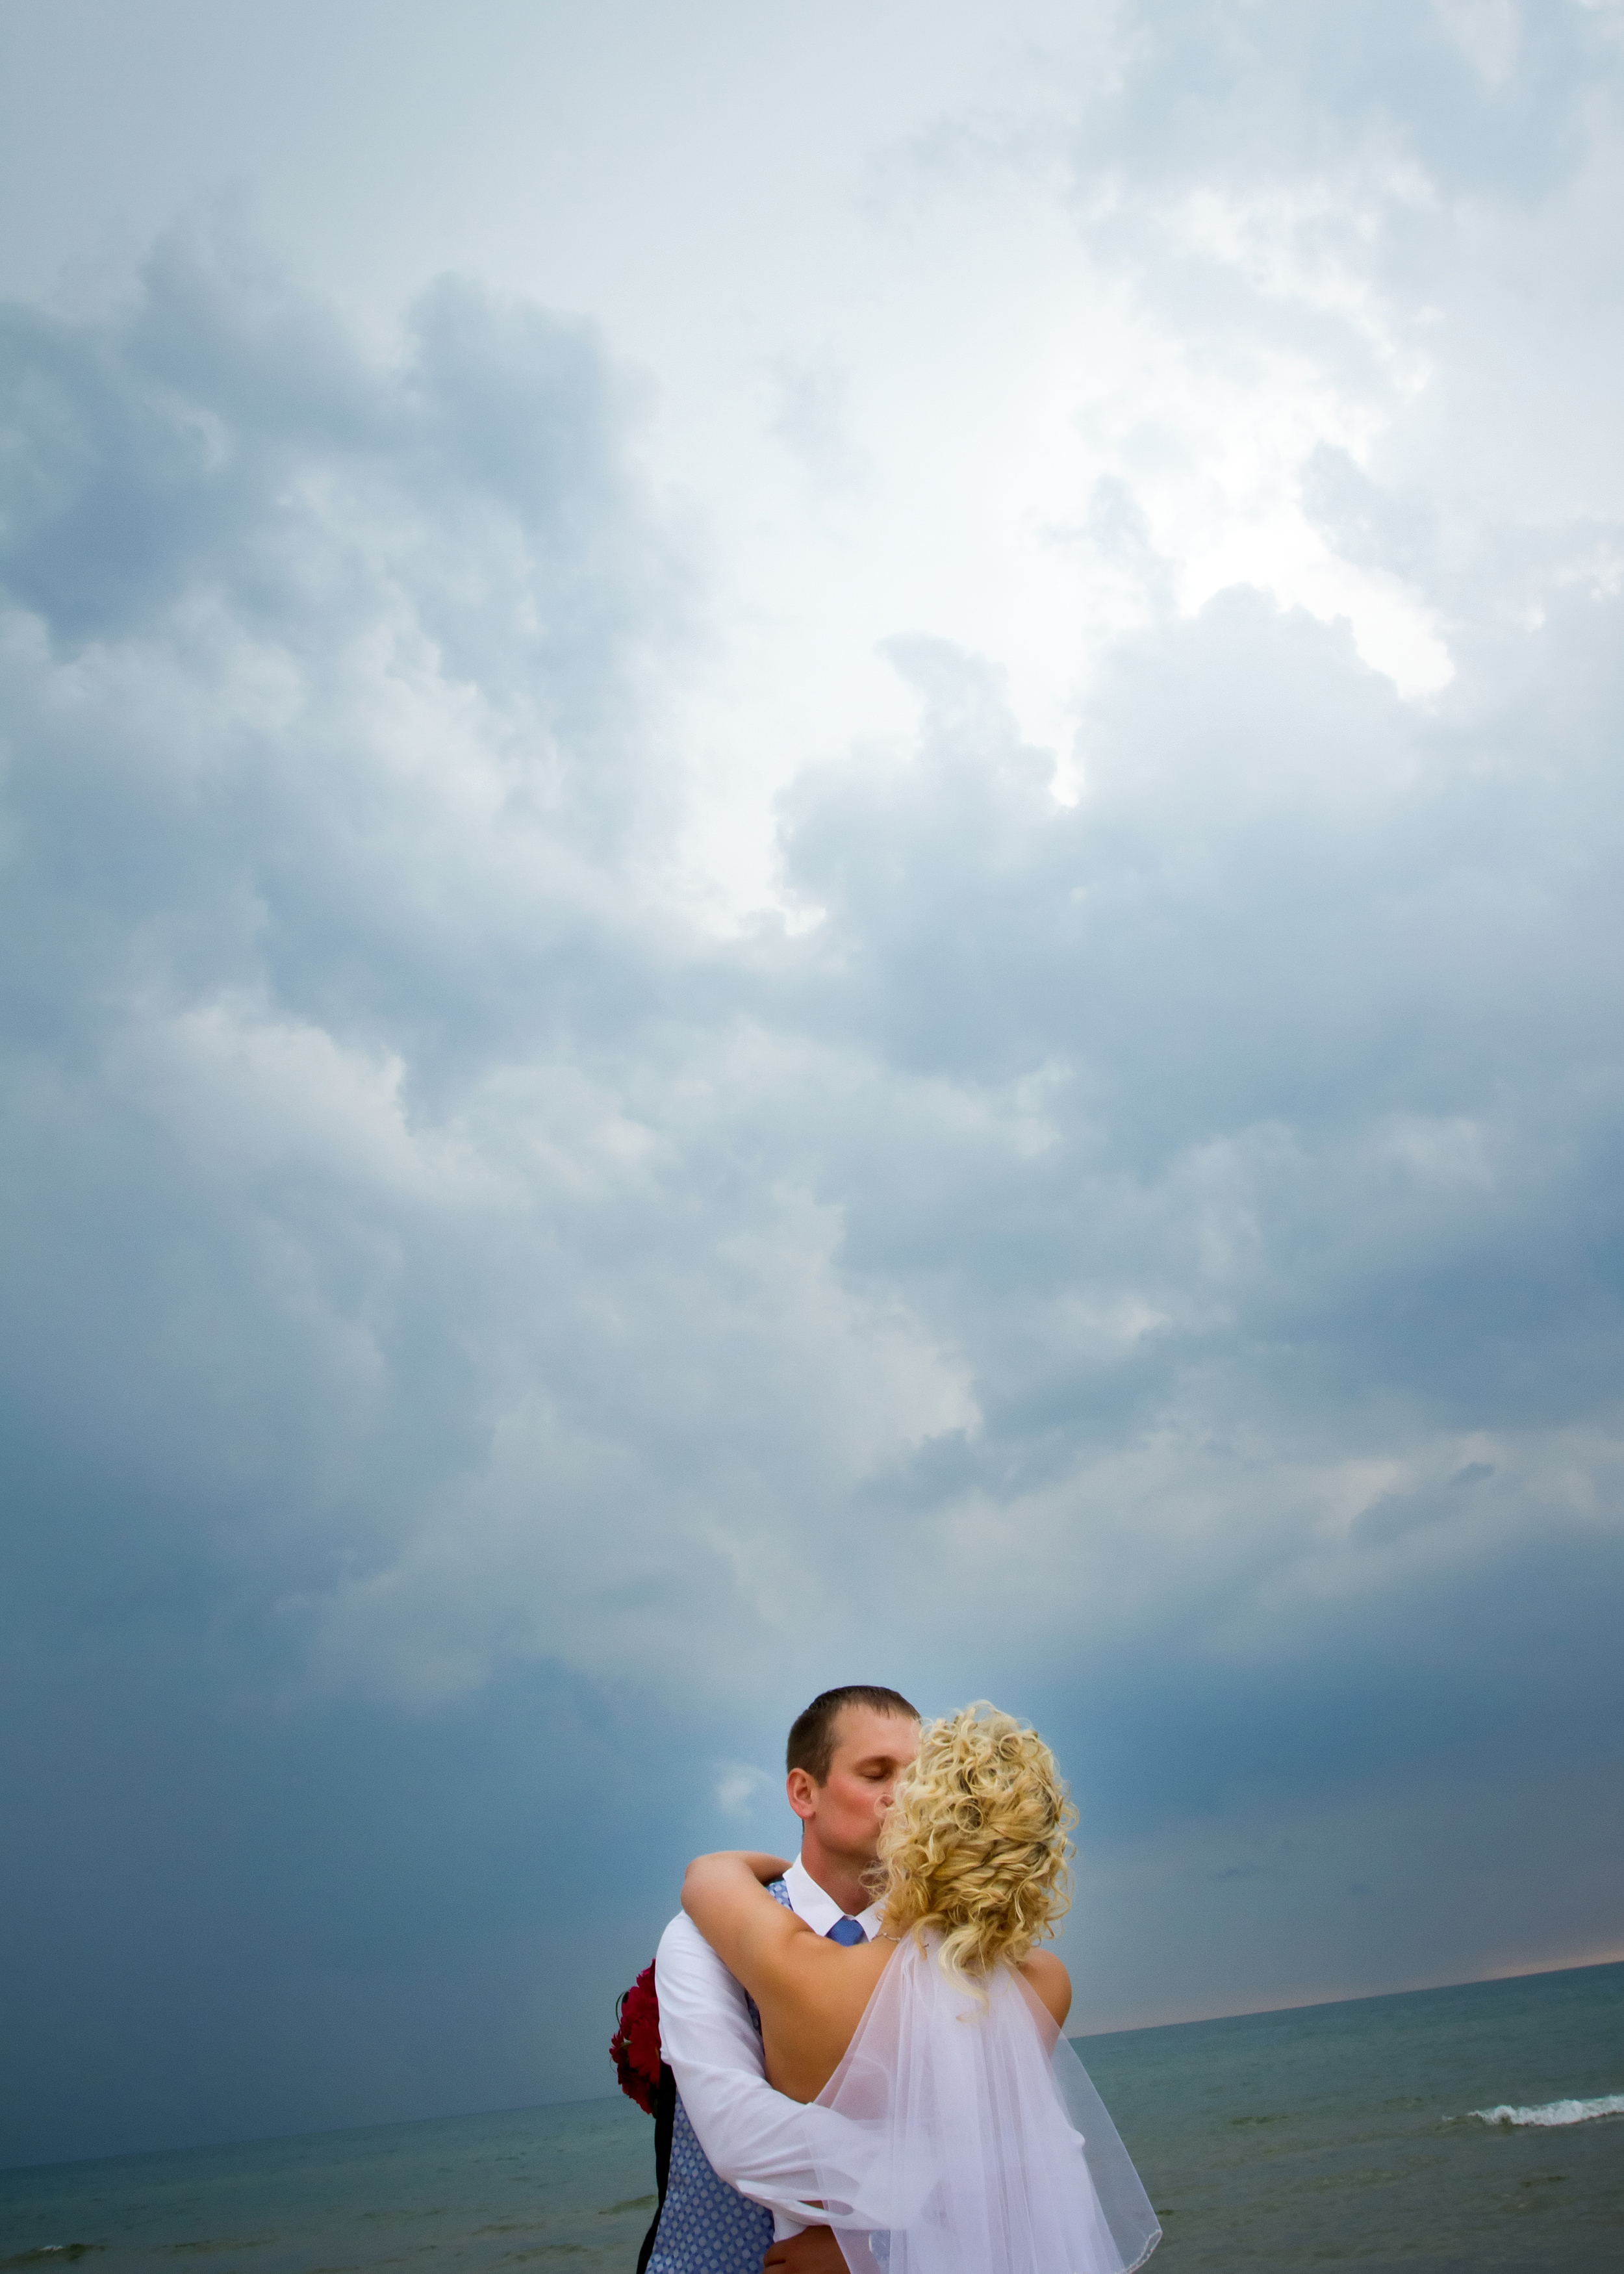 Wedding-Photography-Shadowland-Ballroom-St-Joseph-Southwest-Michigan_94.jpg